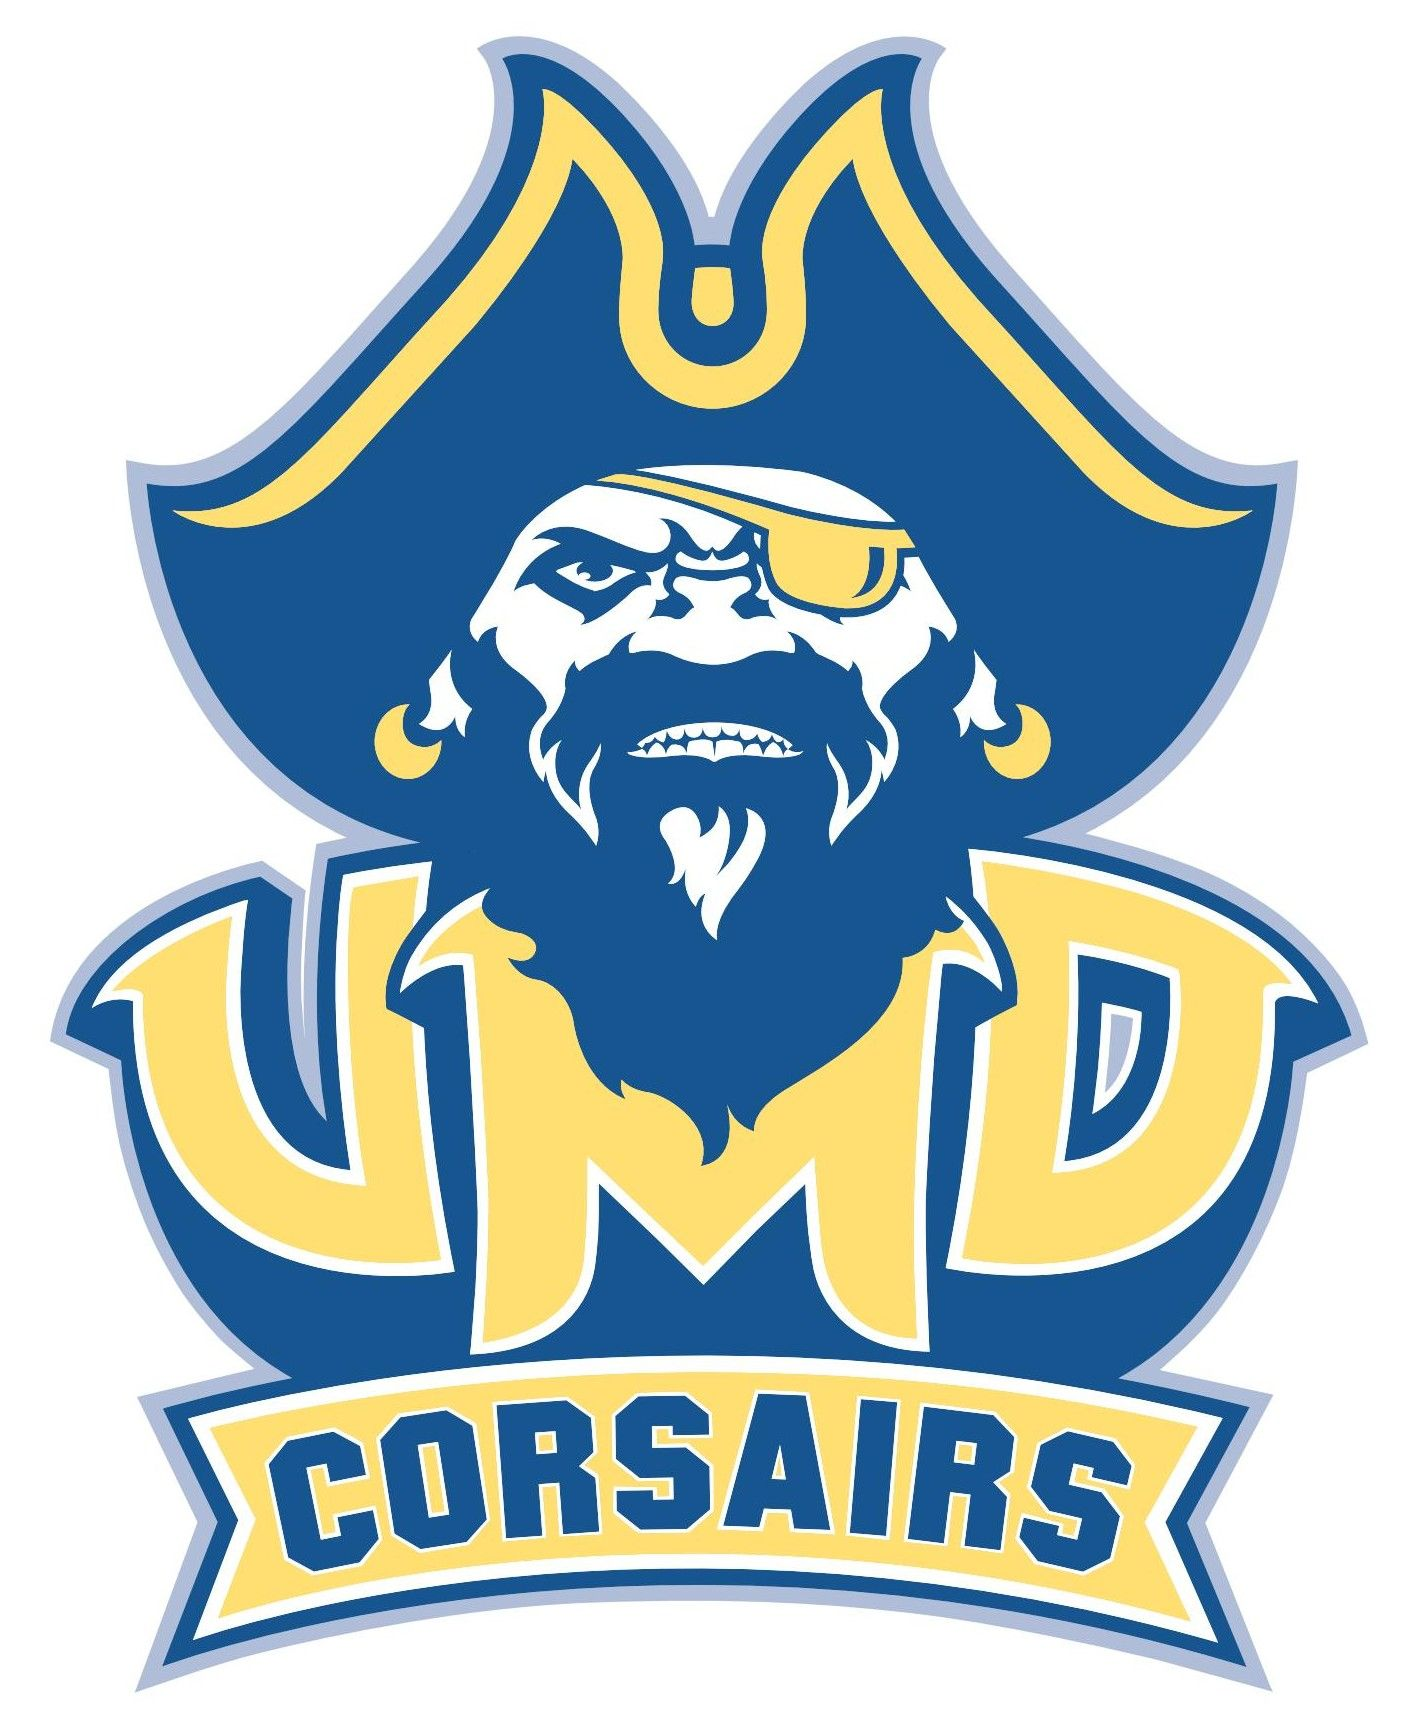 Umass Dartmouth Corsairs Logos Vector Free Logo Eps Download Logos Nfl Teams Logos Hockey Logos